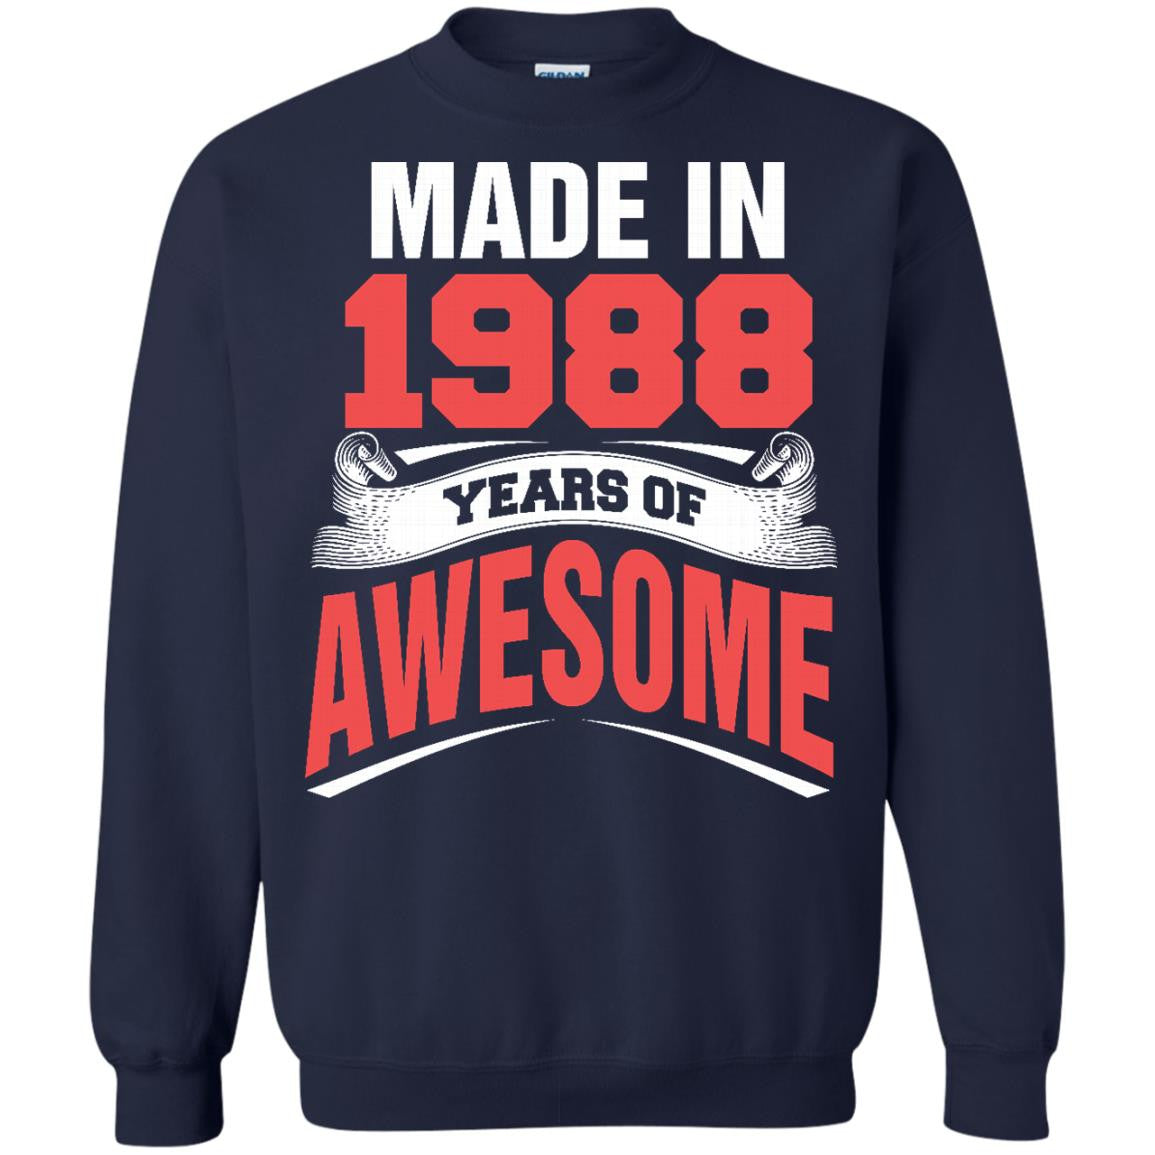 1988 Shirts Made In 1988 Year of Awesome T-shirts Hoodies Sweatshirts